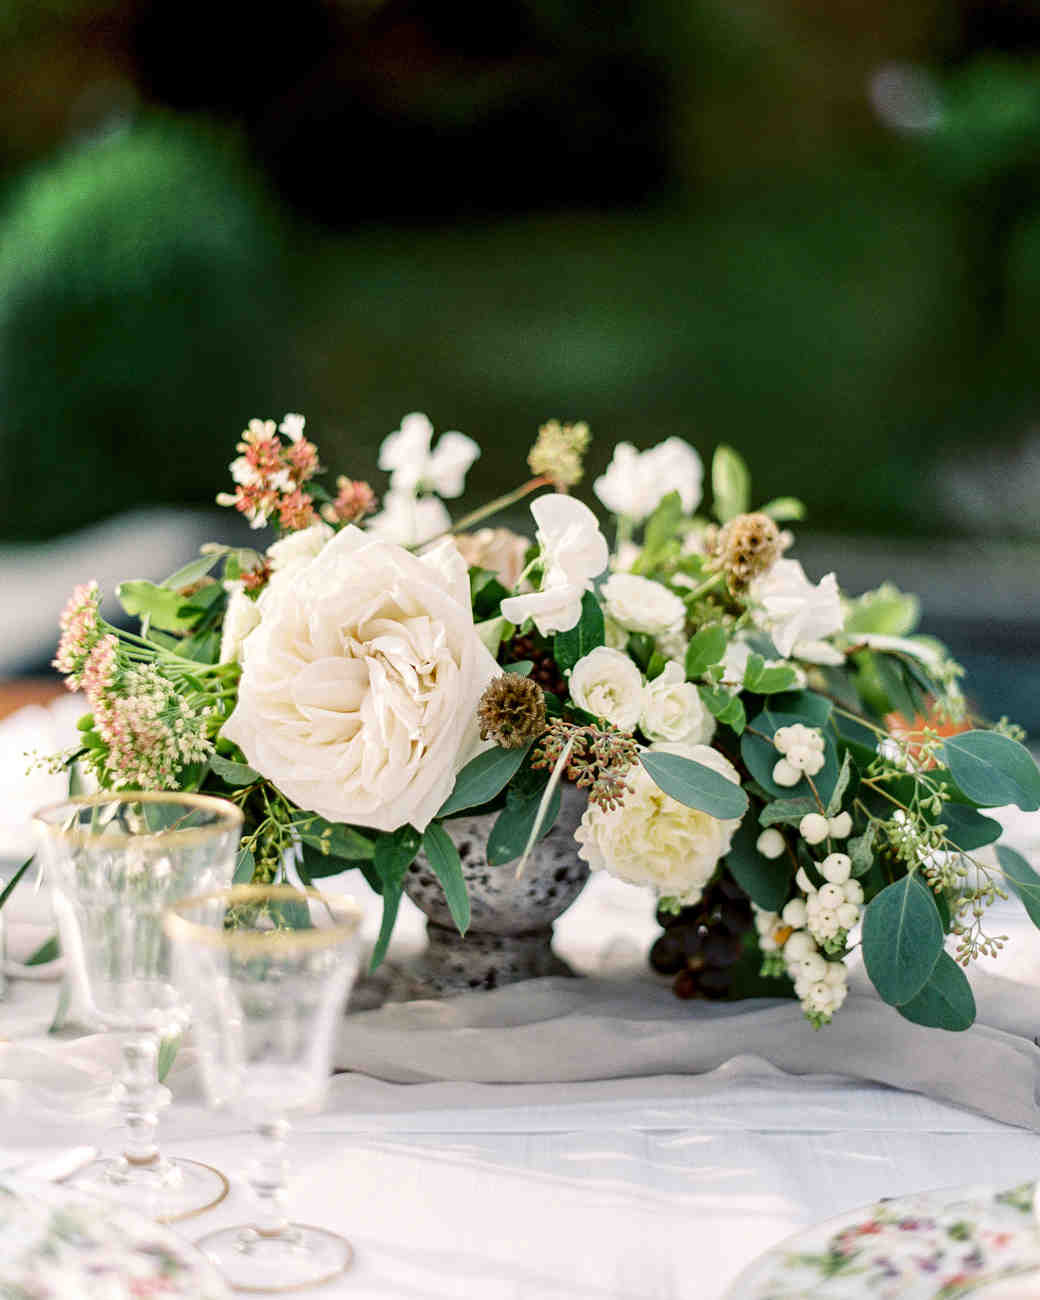 Flower Arrangement Ideas For Weddings: Floral Wedding Centerpieces